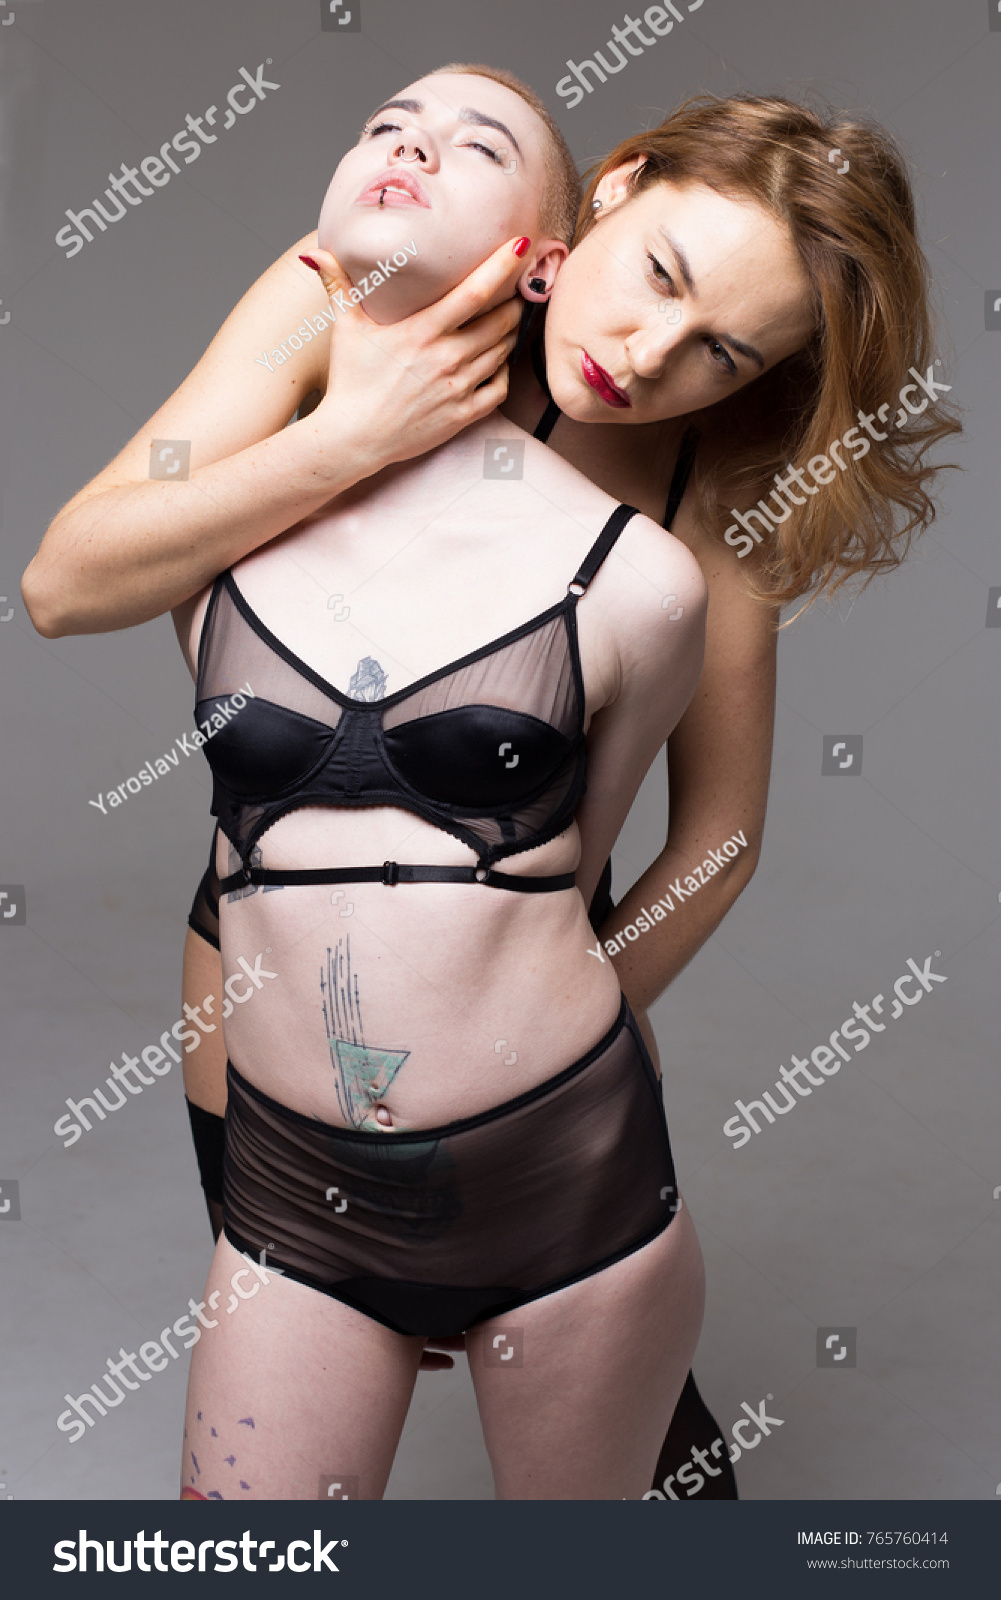 Submissive women looking for master